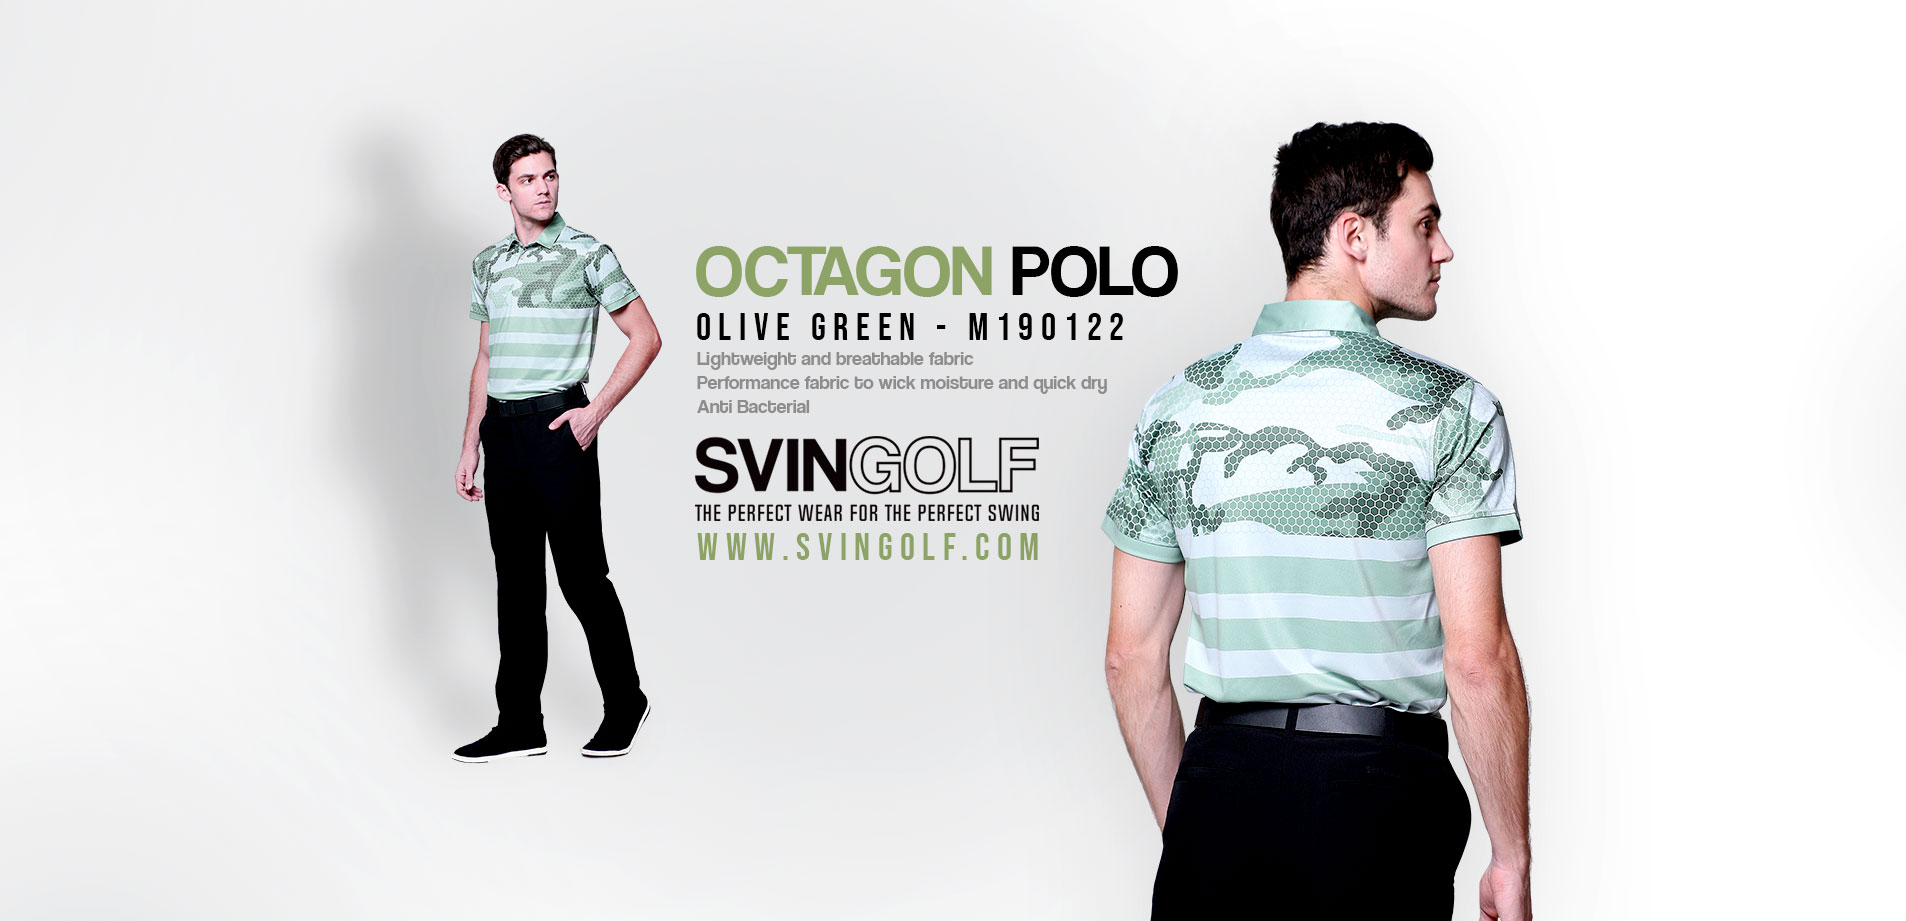 OCTAGON POLO